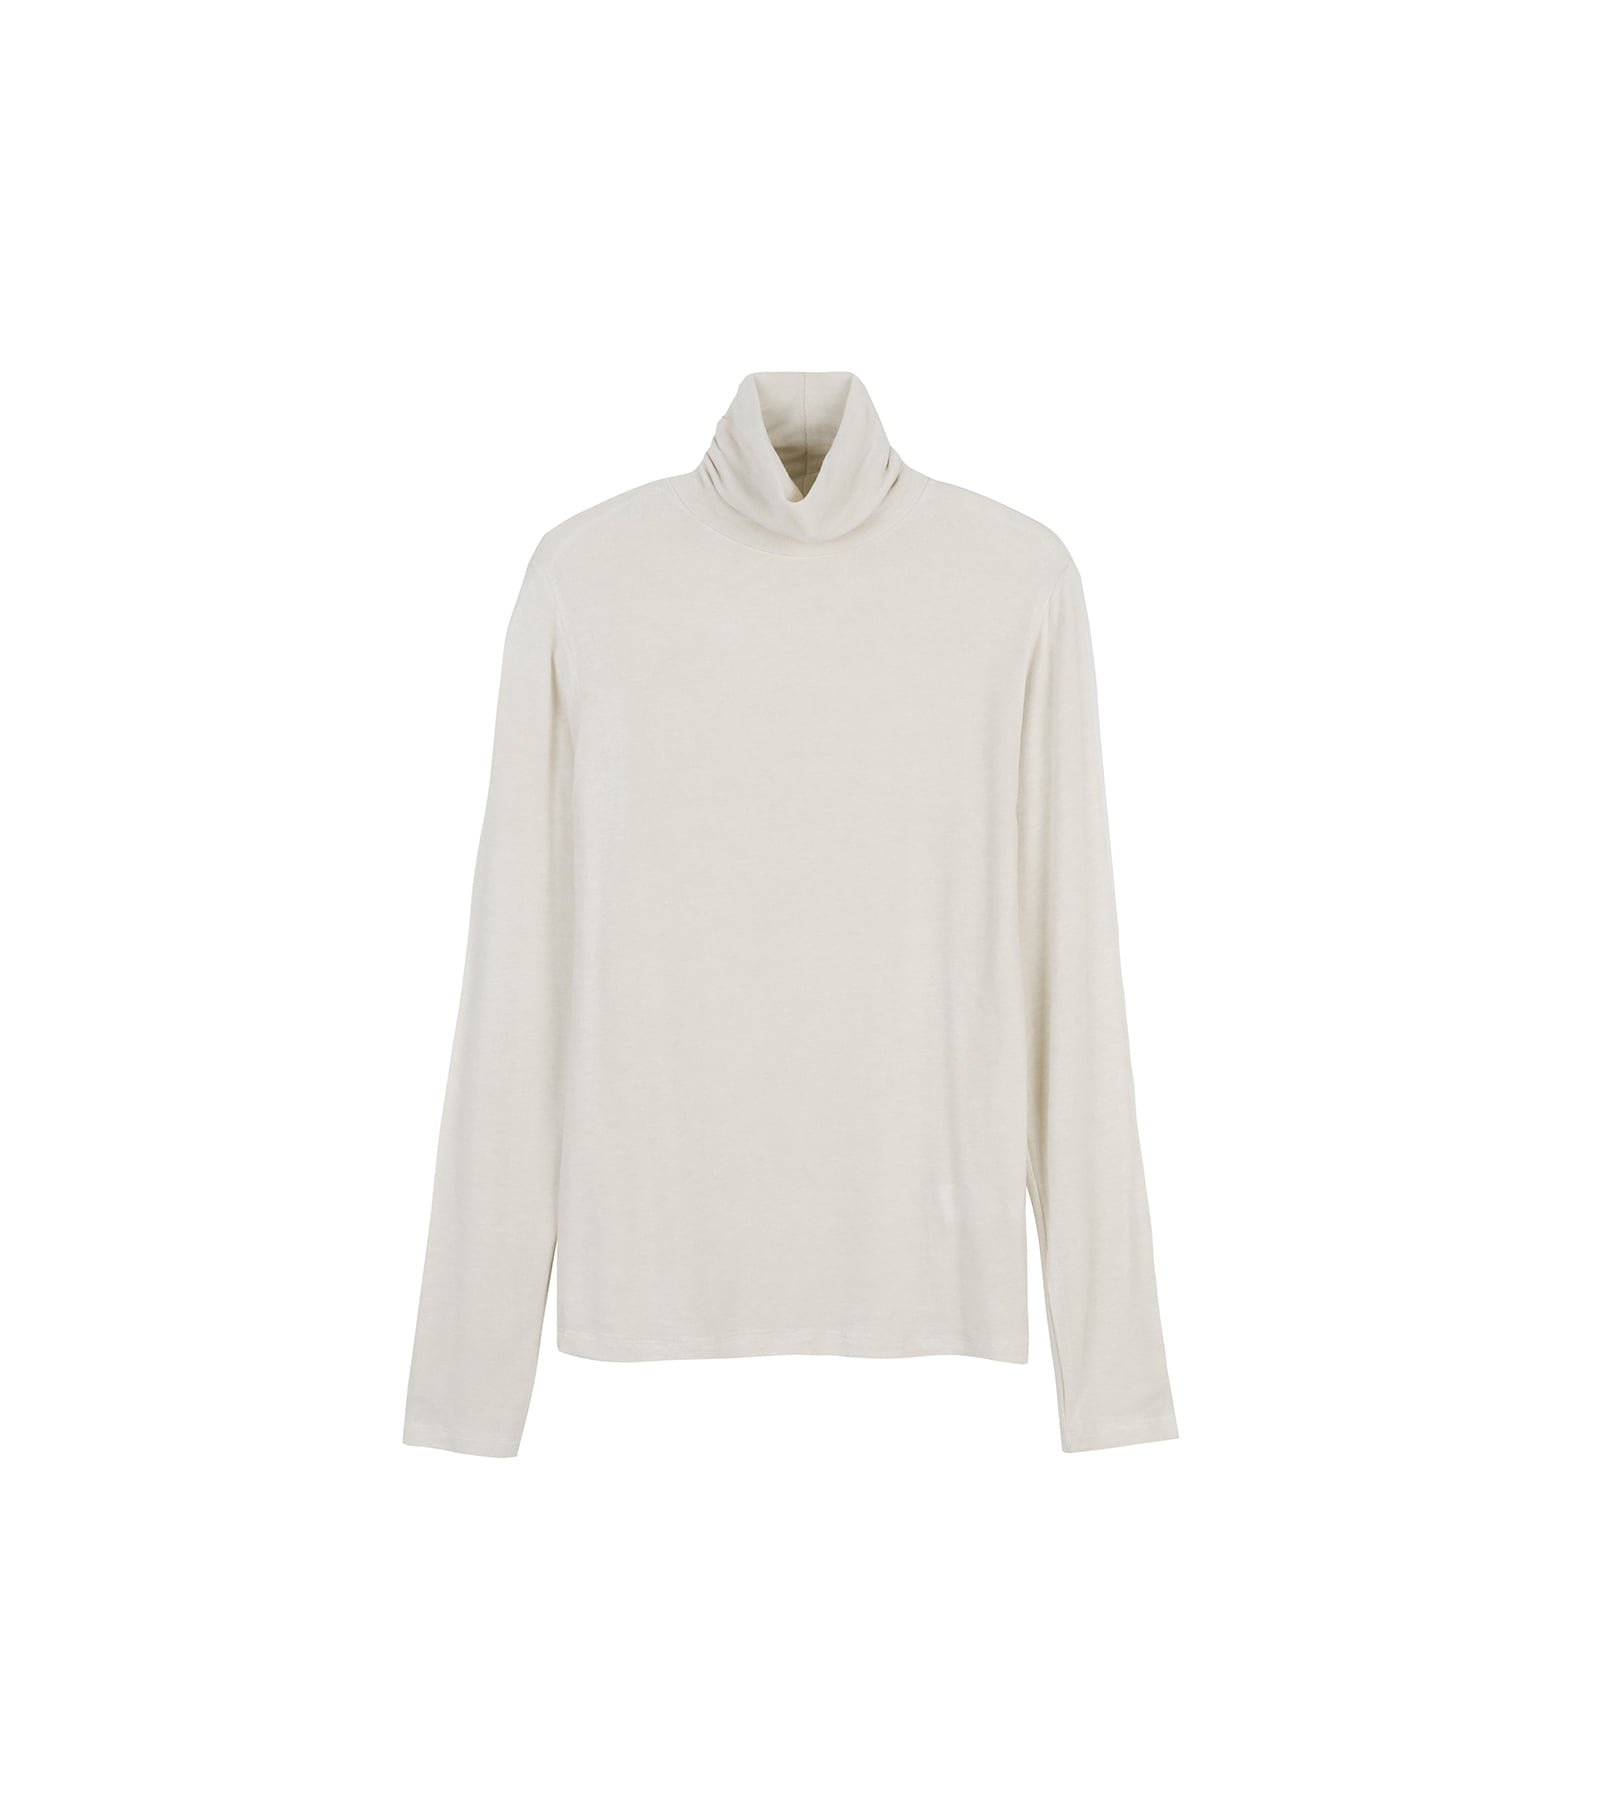 Daily Cainwool Turtleneck Top